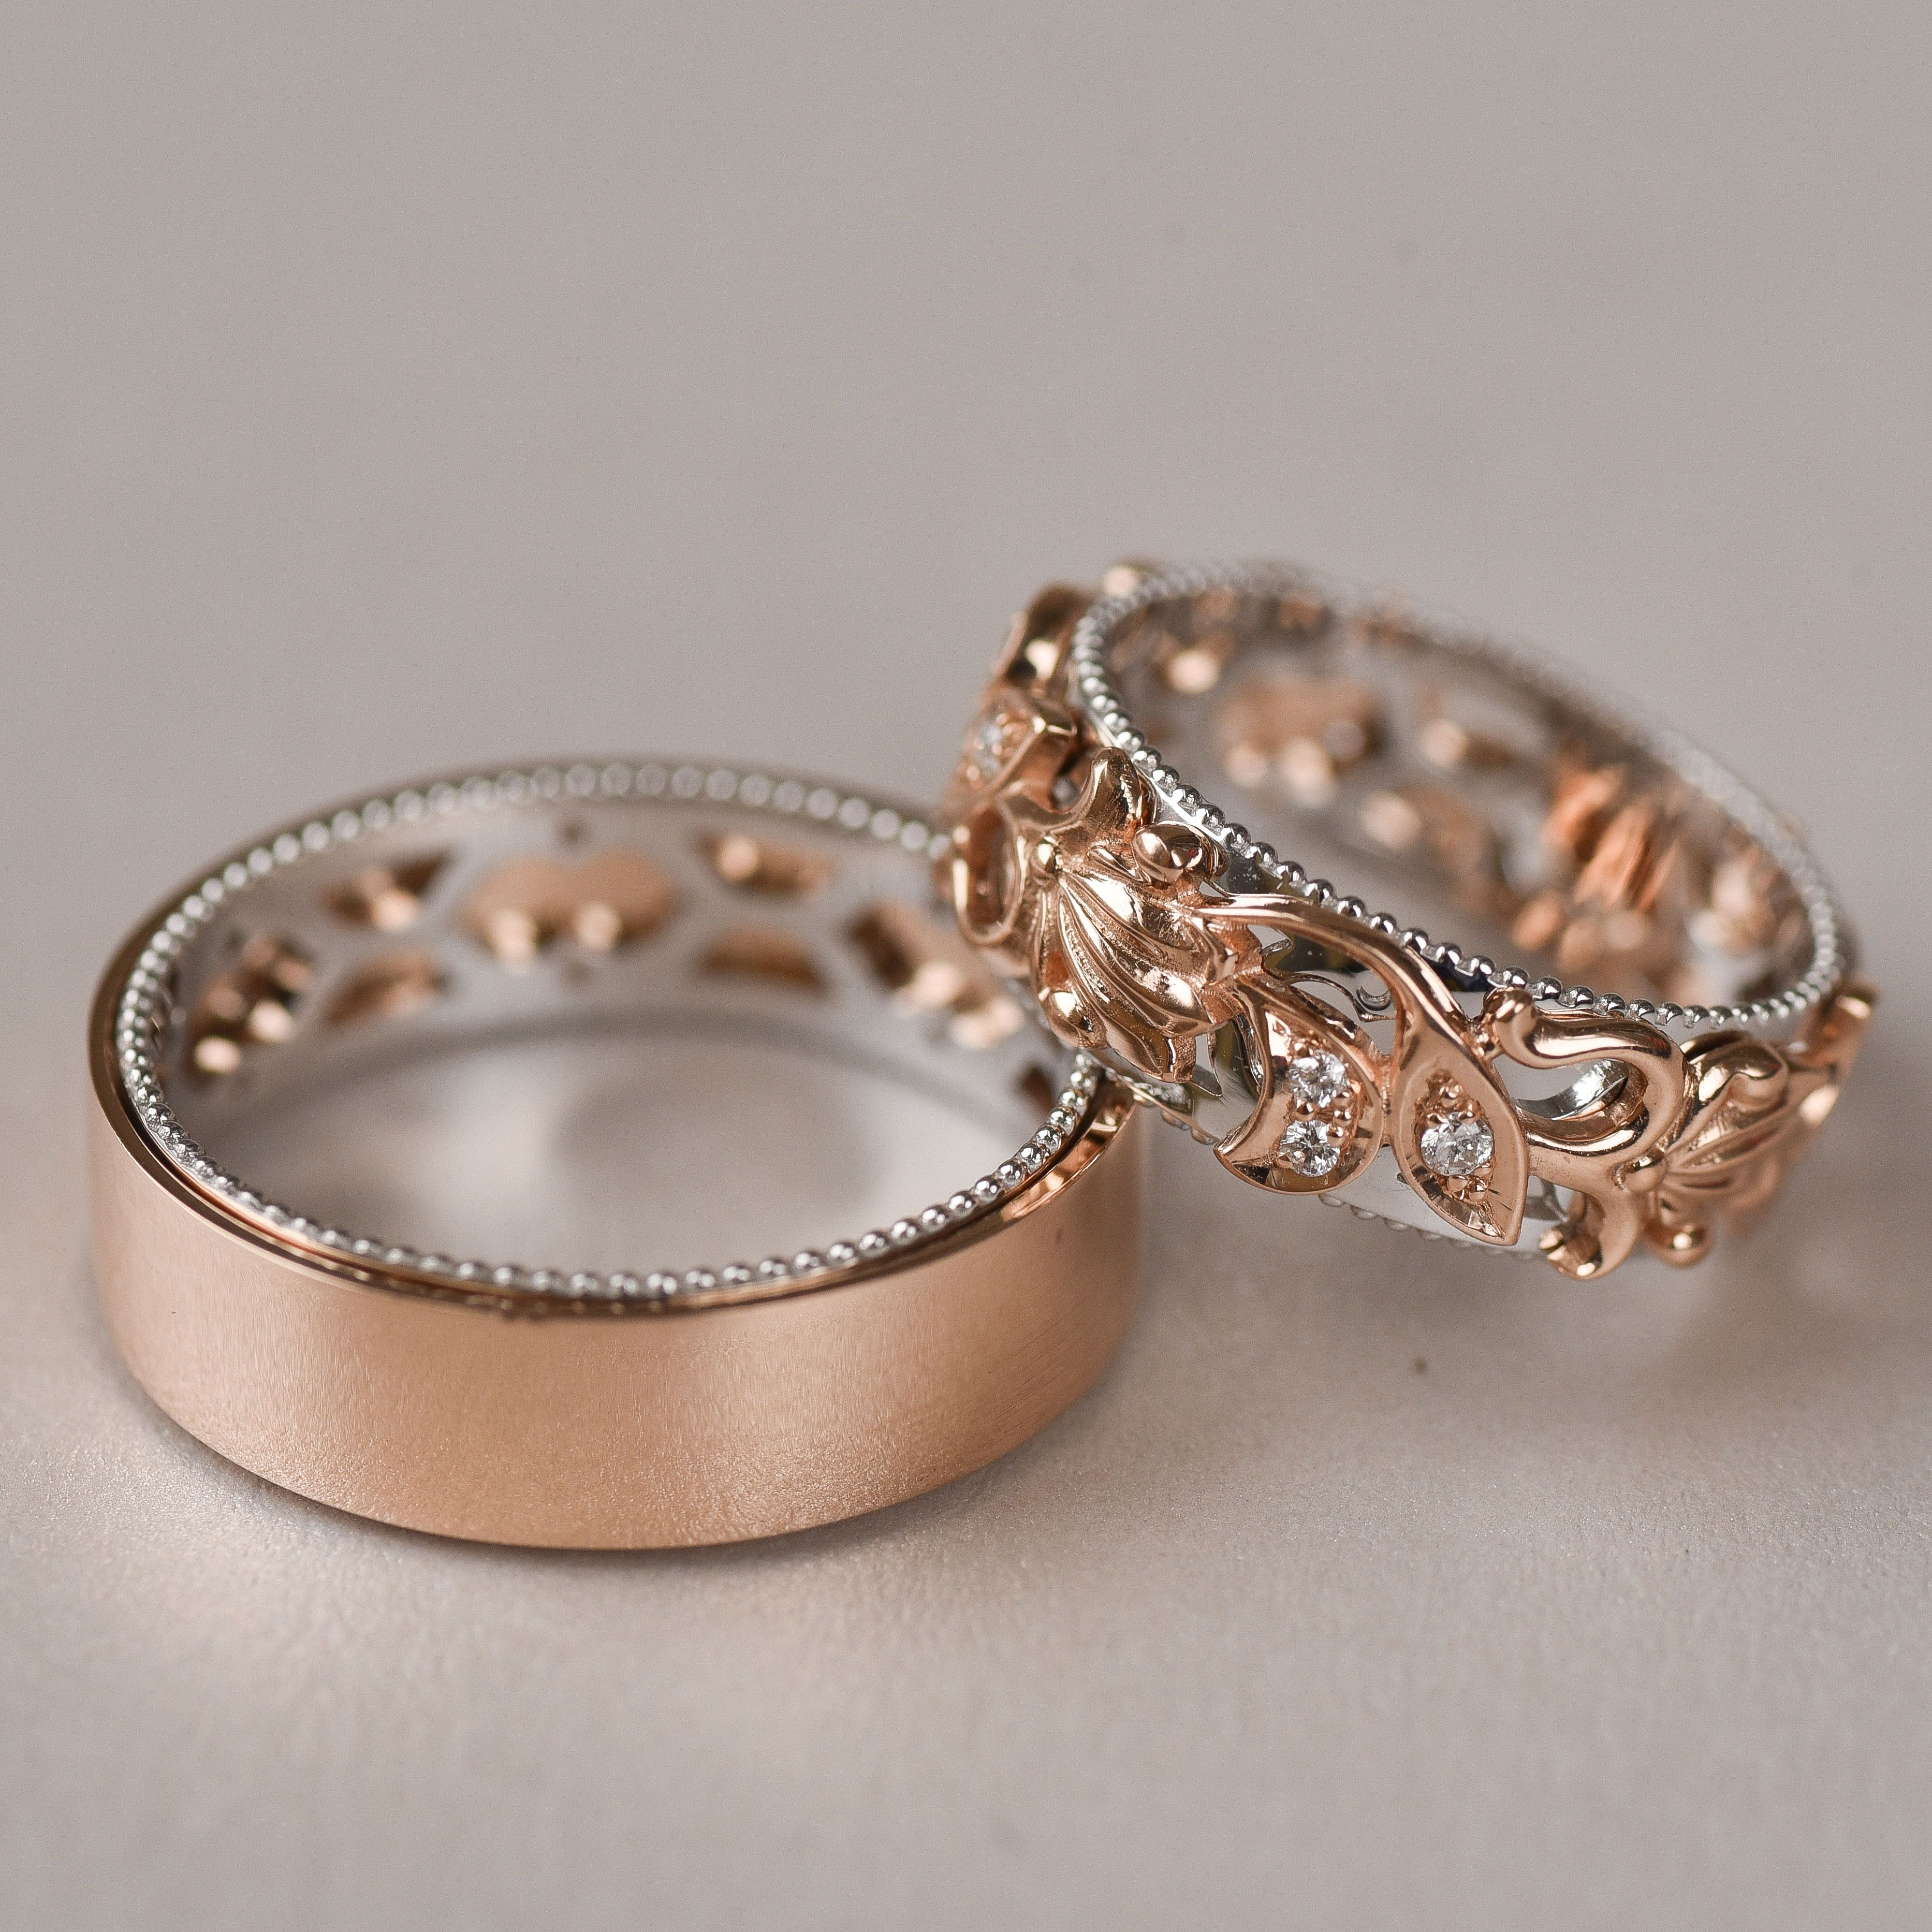 This is an image of Matching Wedding Bands Wedding Band Set His and Hers His and